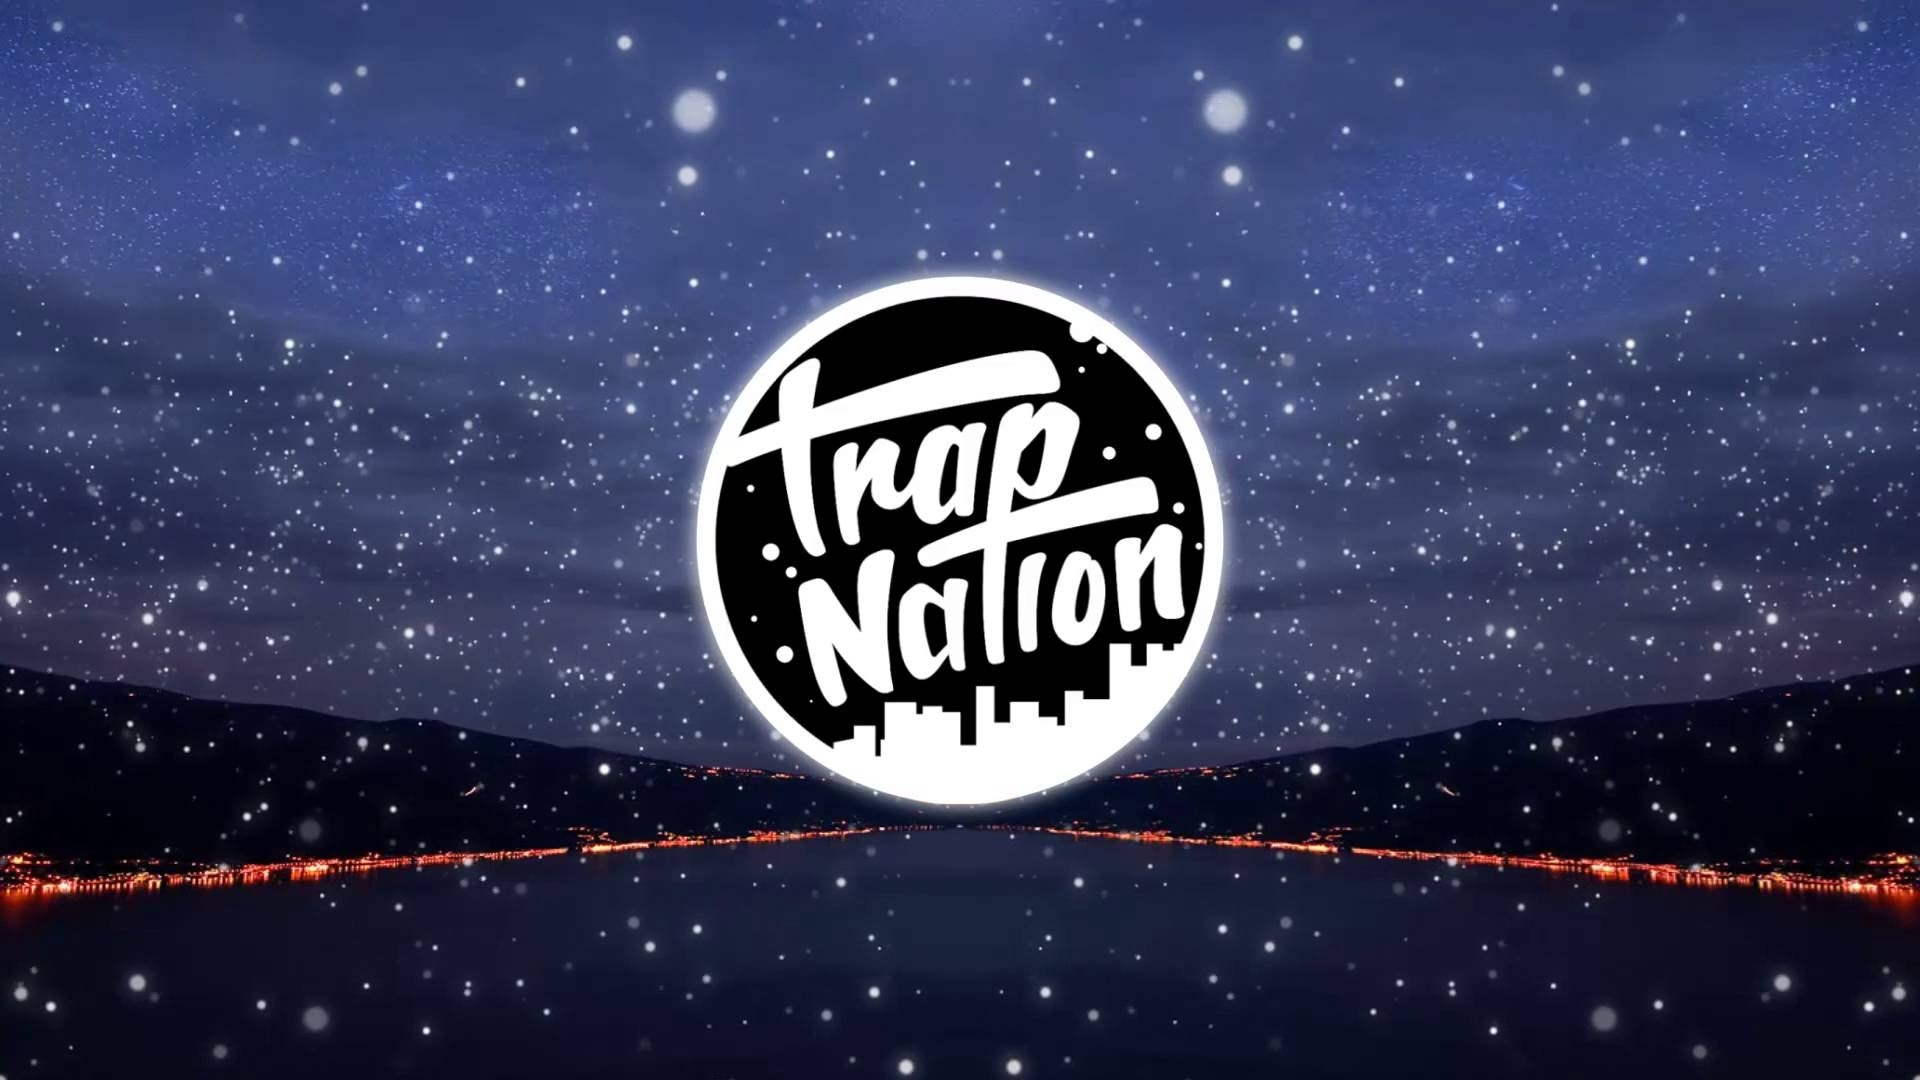 see the massive lineups from trap nation & chill nation at sxsw